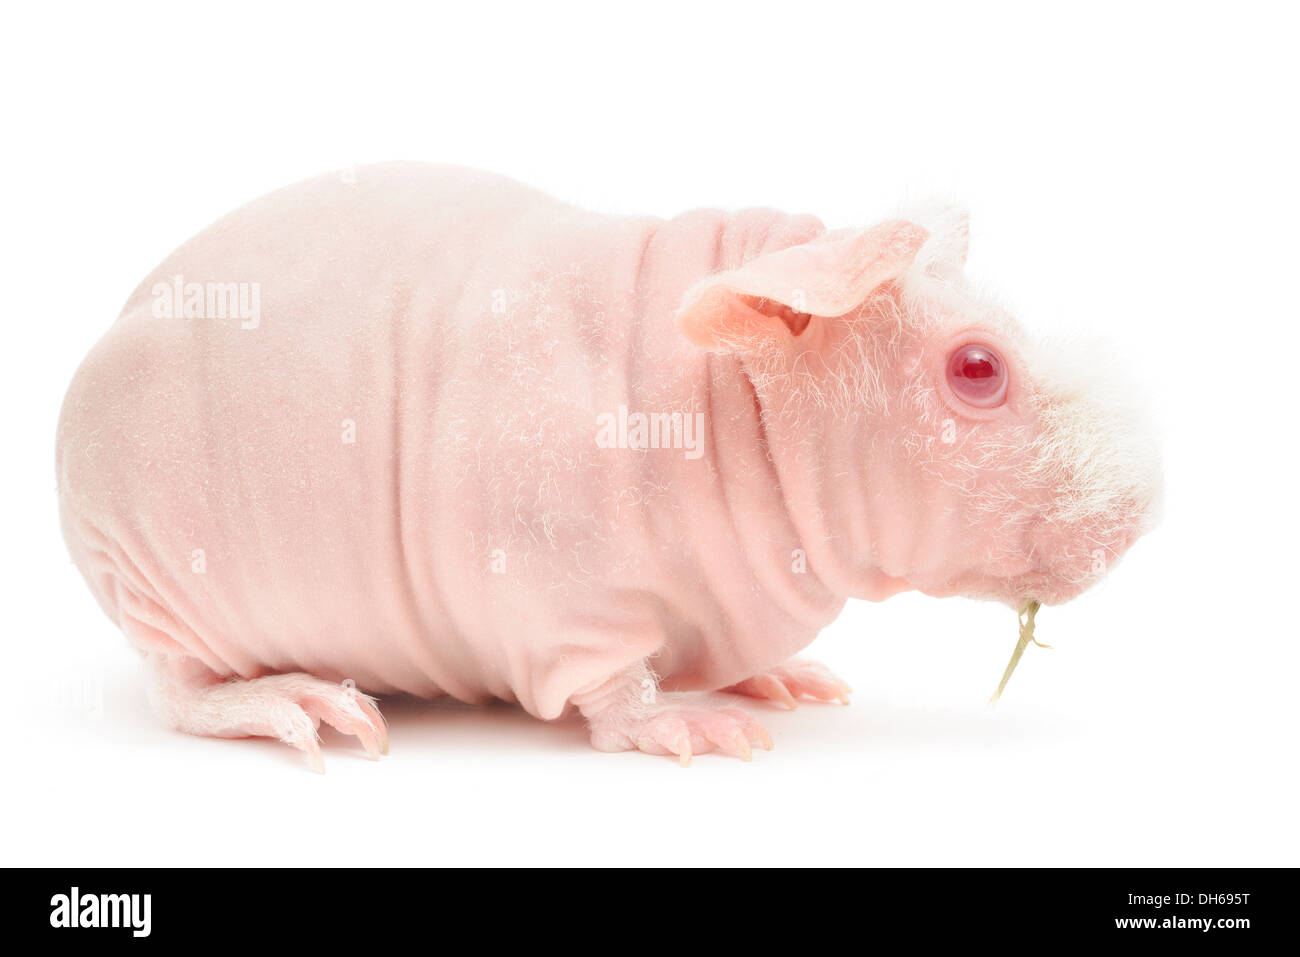 Hairless cavy isolated in front of a white background. - Stock Image